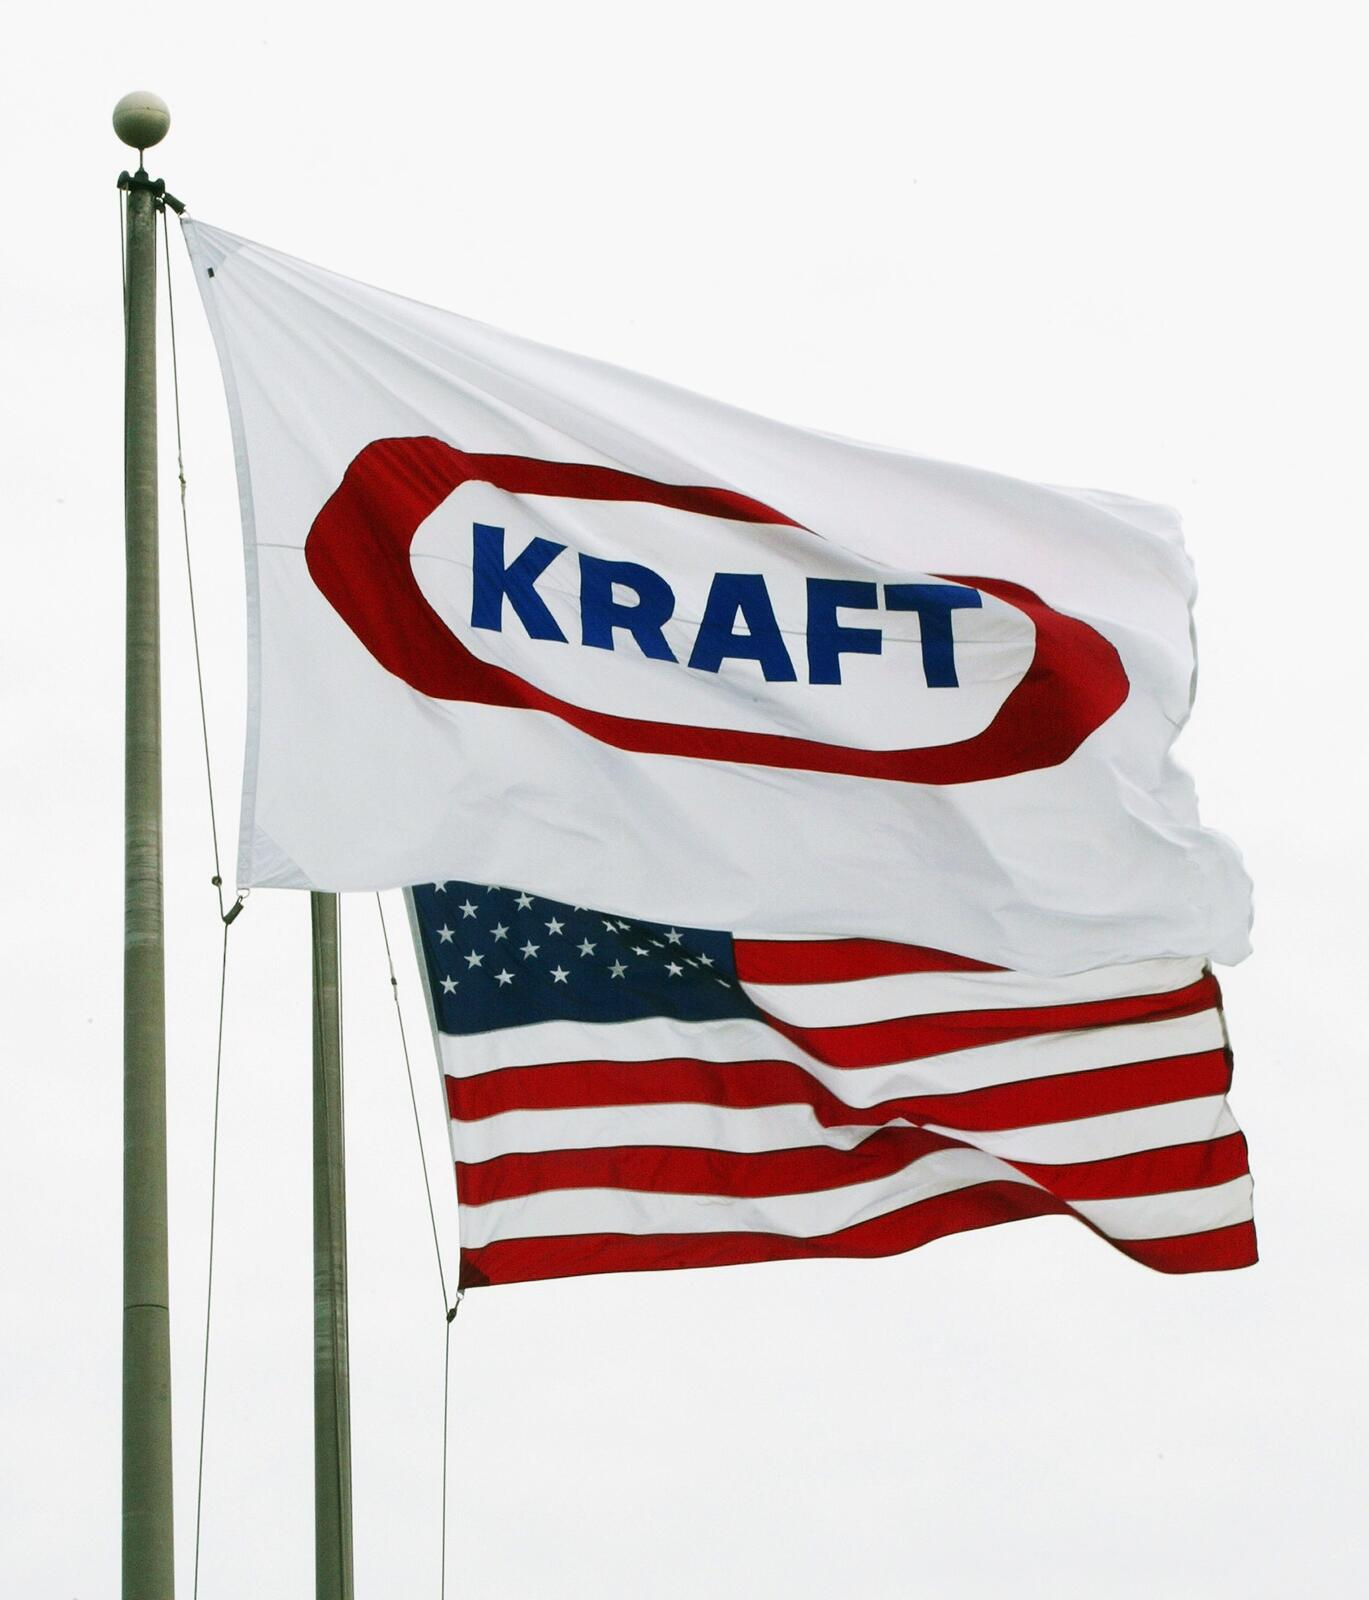 Kraft Foods to merge with Heinz